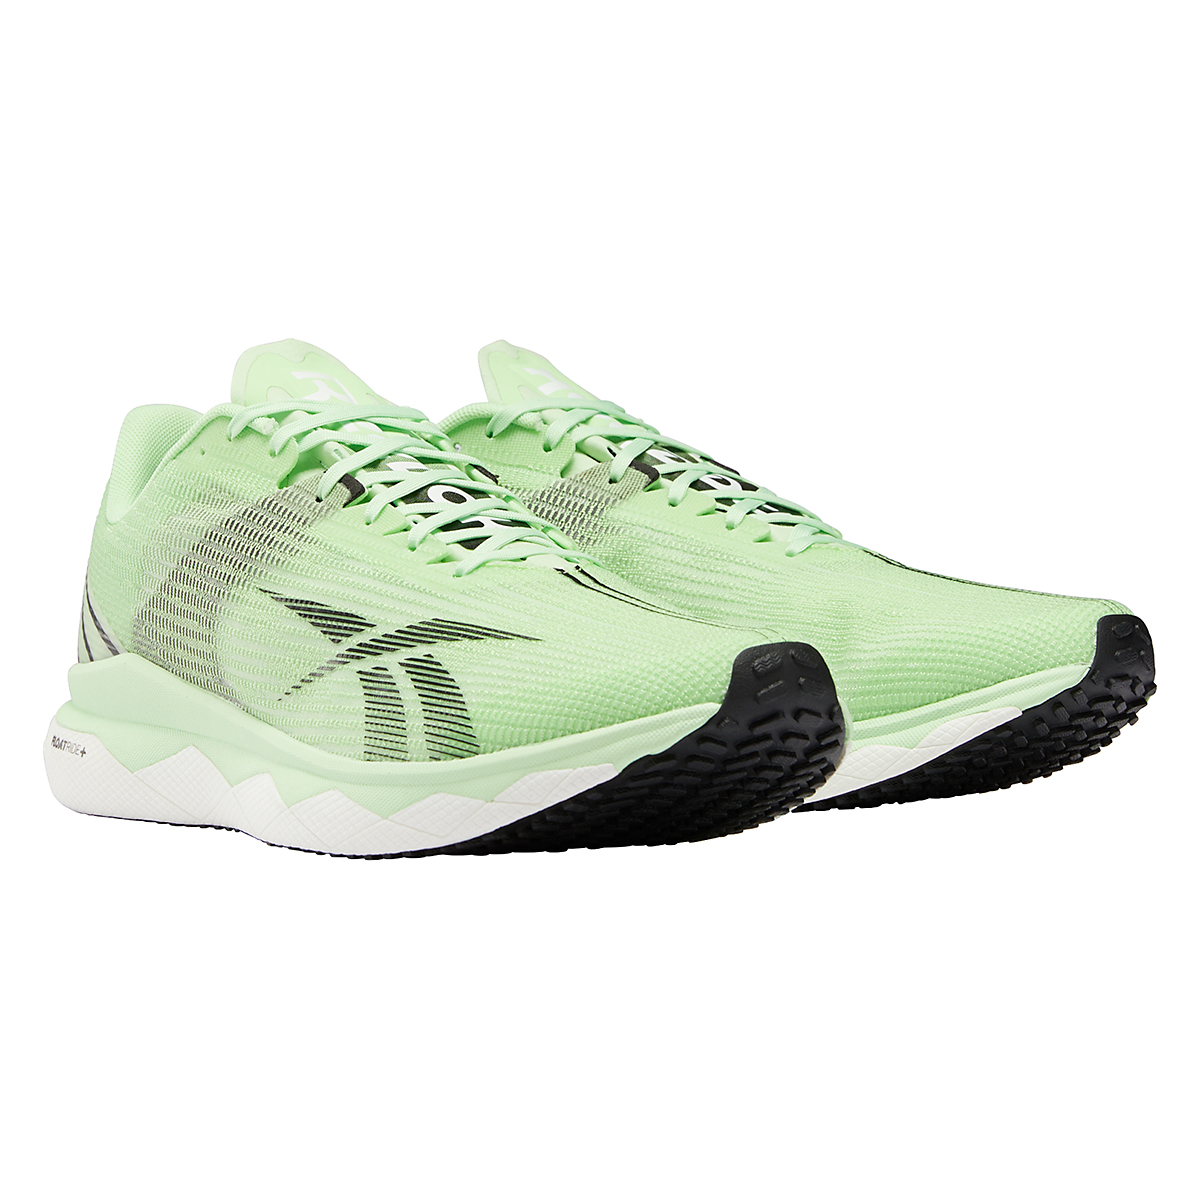 Men's Reebok Floatride Run Fast 3.0 Running Shoe - Color: Neon Mint/White/Core Black - Size: 7 - Width: Regular, Neon Mint/White/Core Black, large, image 4